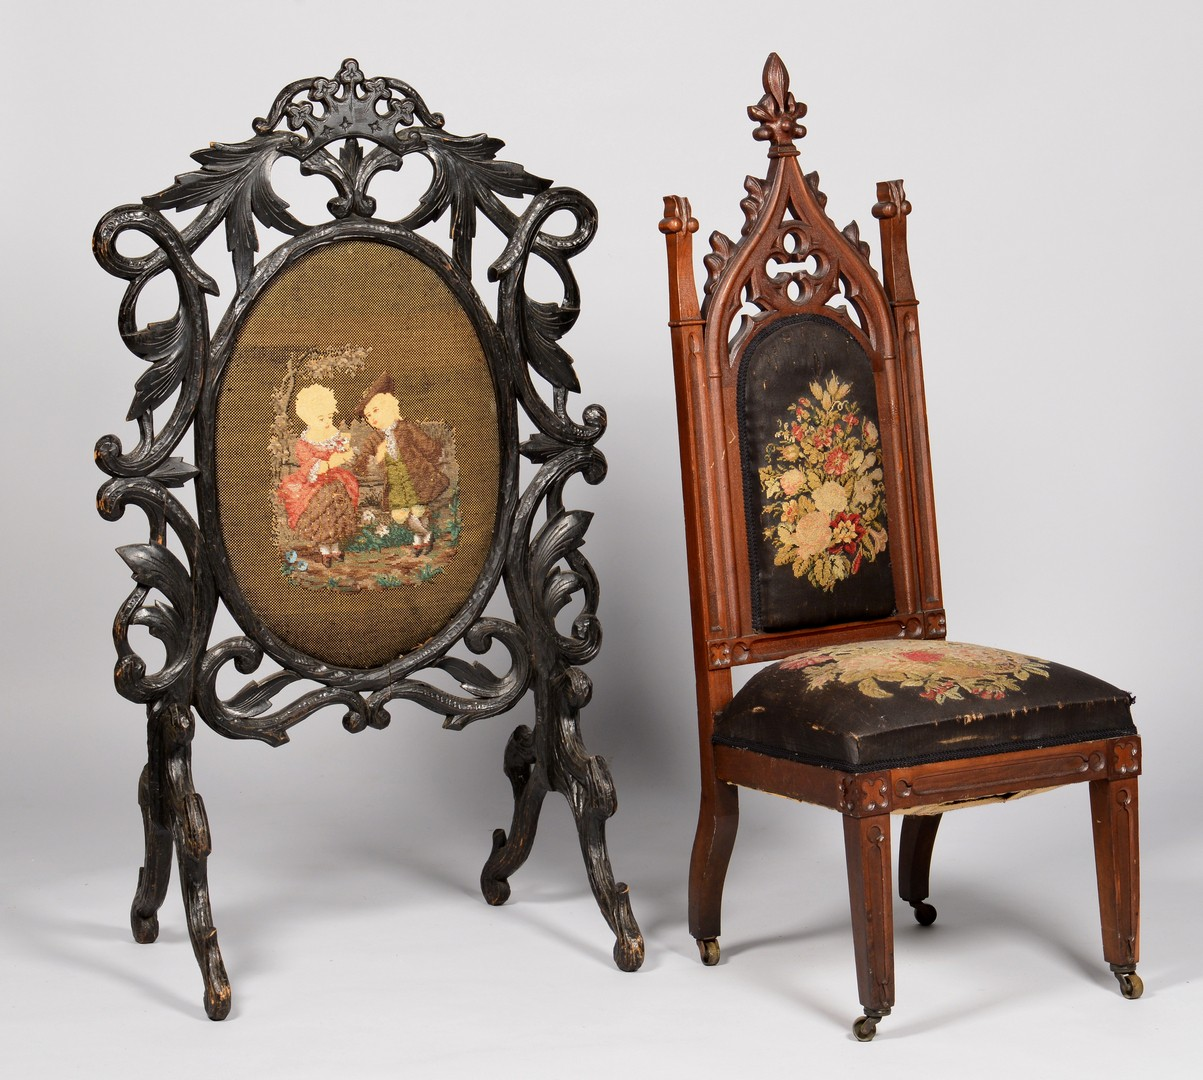 Ancient gothic furniture - Lot 709 2 American Gothic Furniture Items Chair Screen